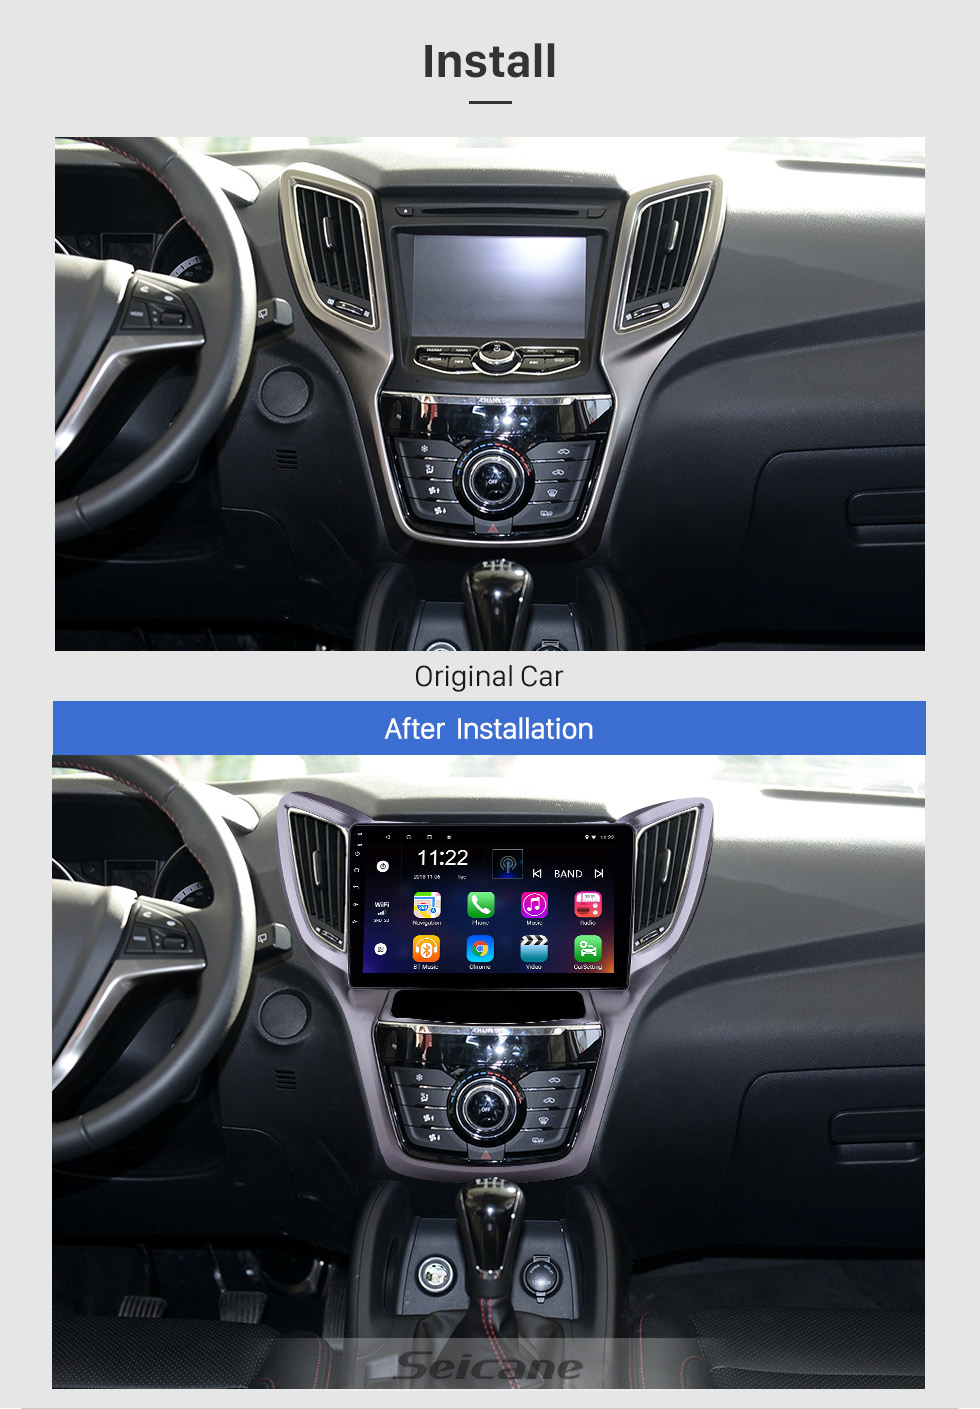 Seicane 10.1 inch Android 8.1 HD Touchscreen GPS Navigation Radio for 2013-2016 Changan CS75 with Bluetooth WIFI AUX support Carplay SWC Mirror Link